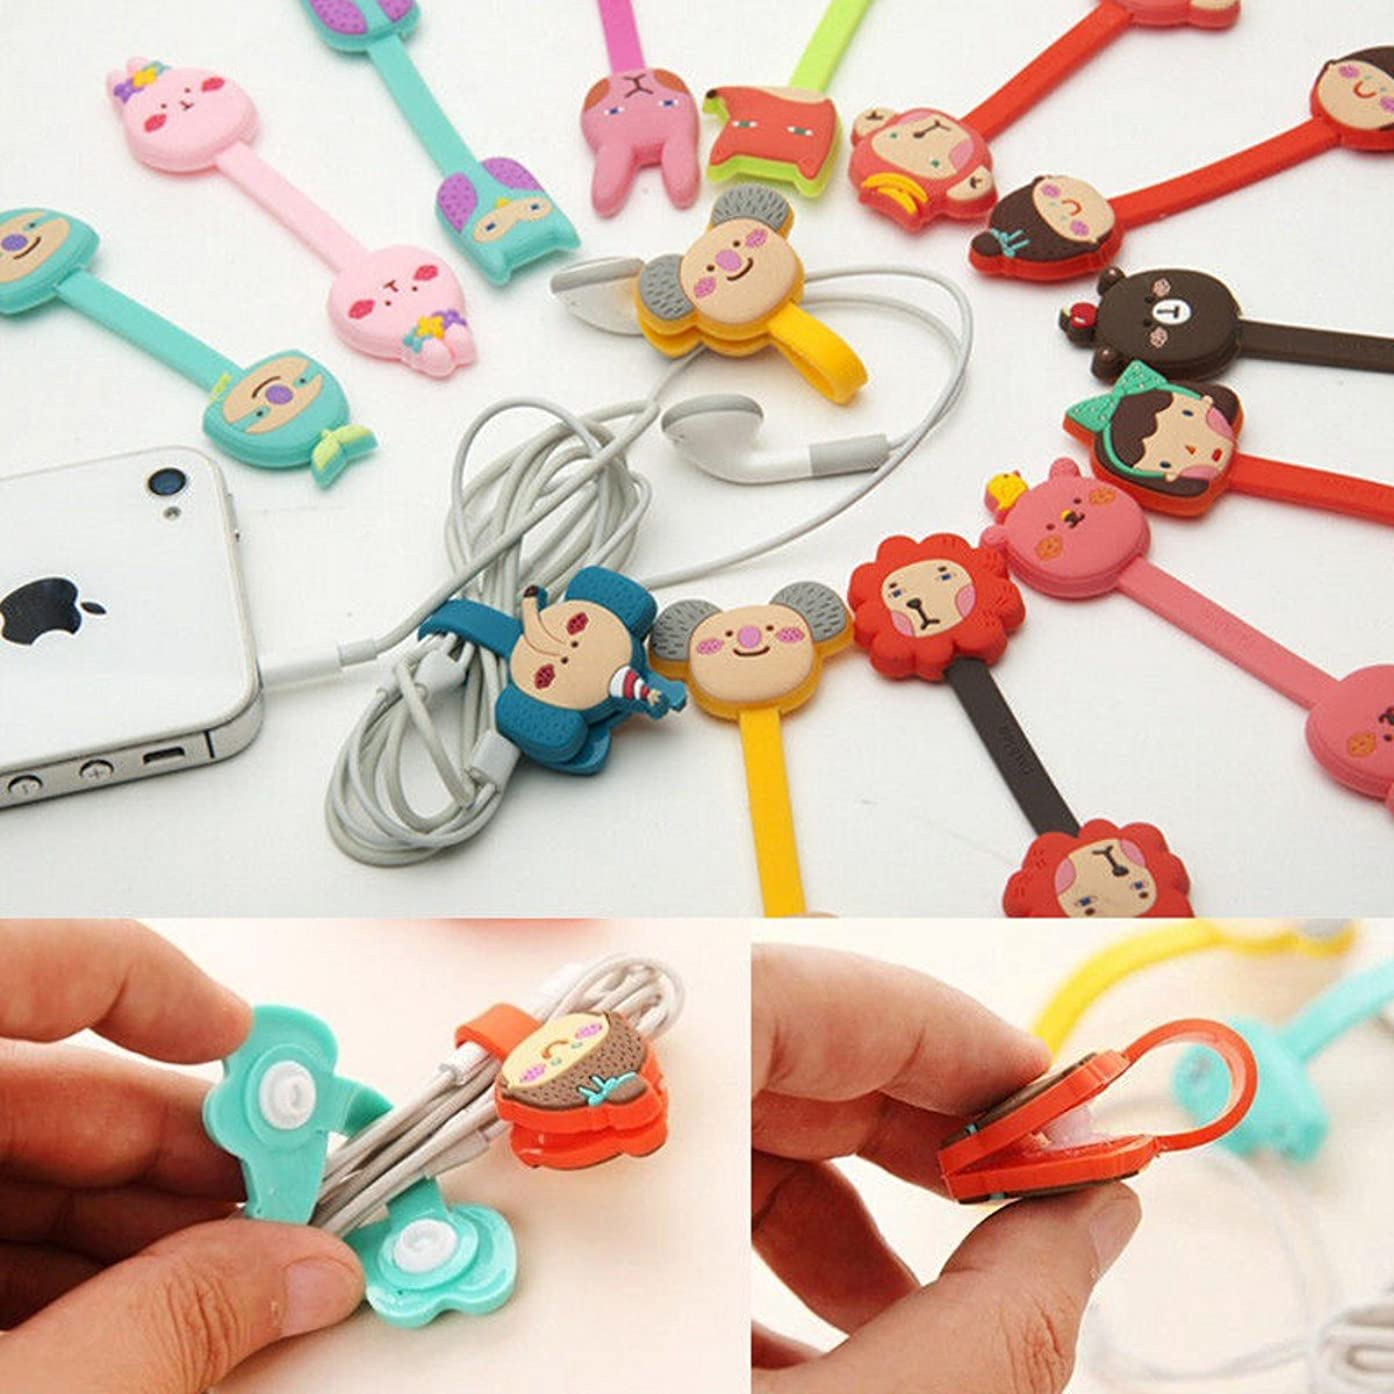 Lot of 13 style Animal Chick Cable Winder Earphone Wire Cord Organiser (13 Different Random Stlye)